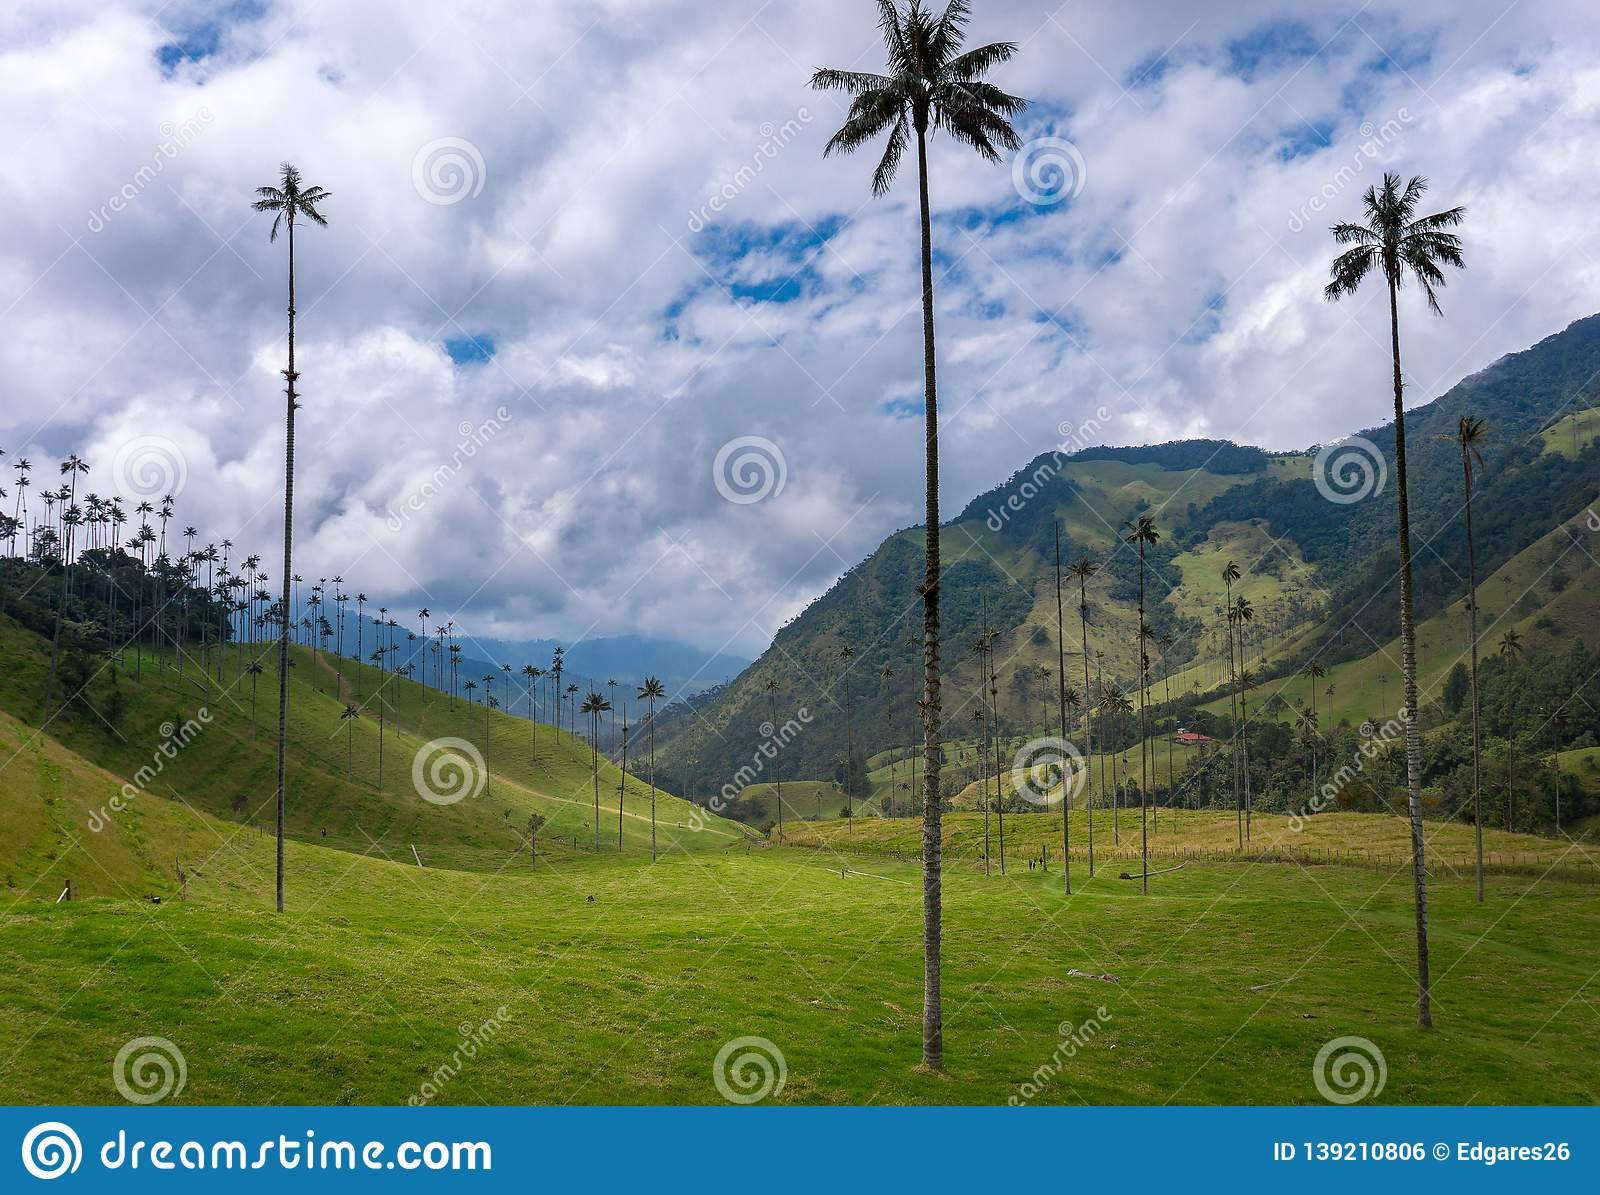 Beautiful Landscape Of The Valle Del Cocora In Salento Quindio Colombia Stock Photo Image Of Costa Jungle 139210806